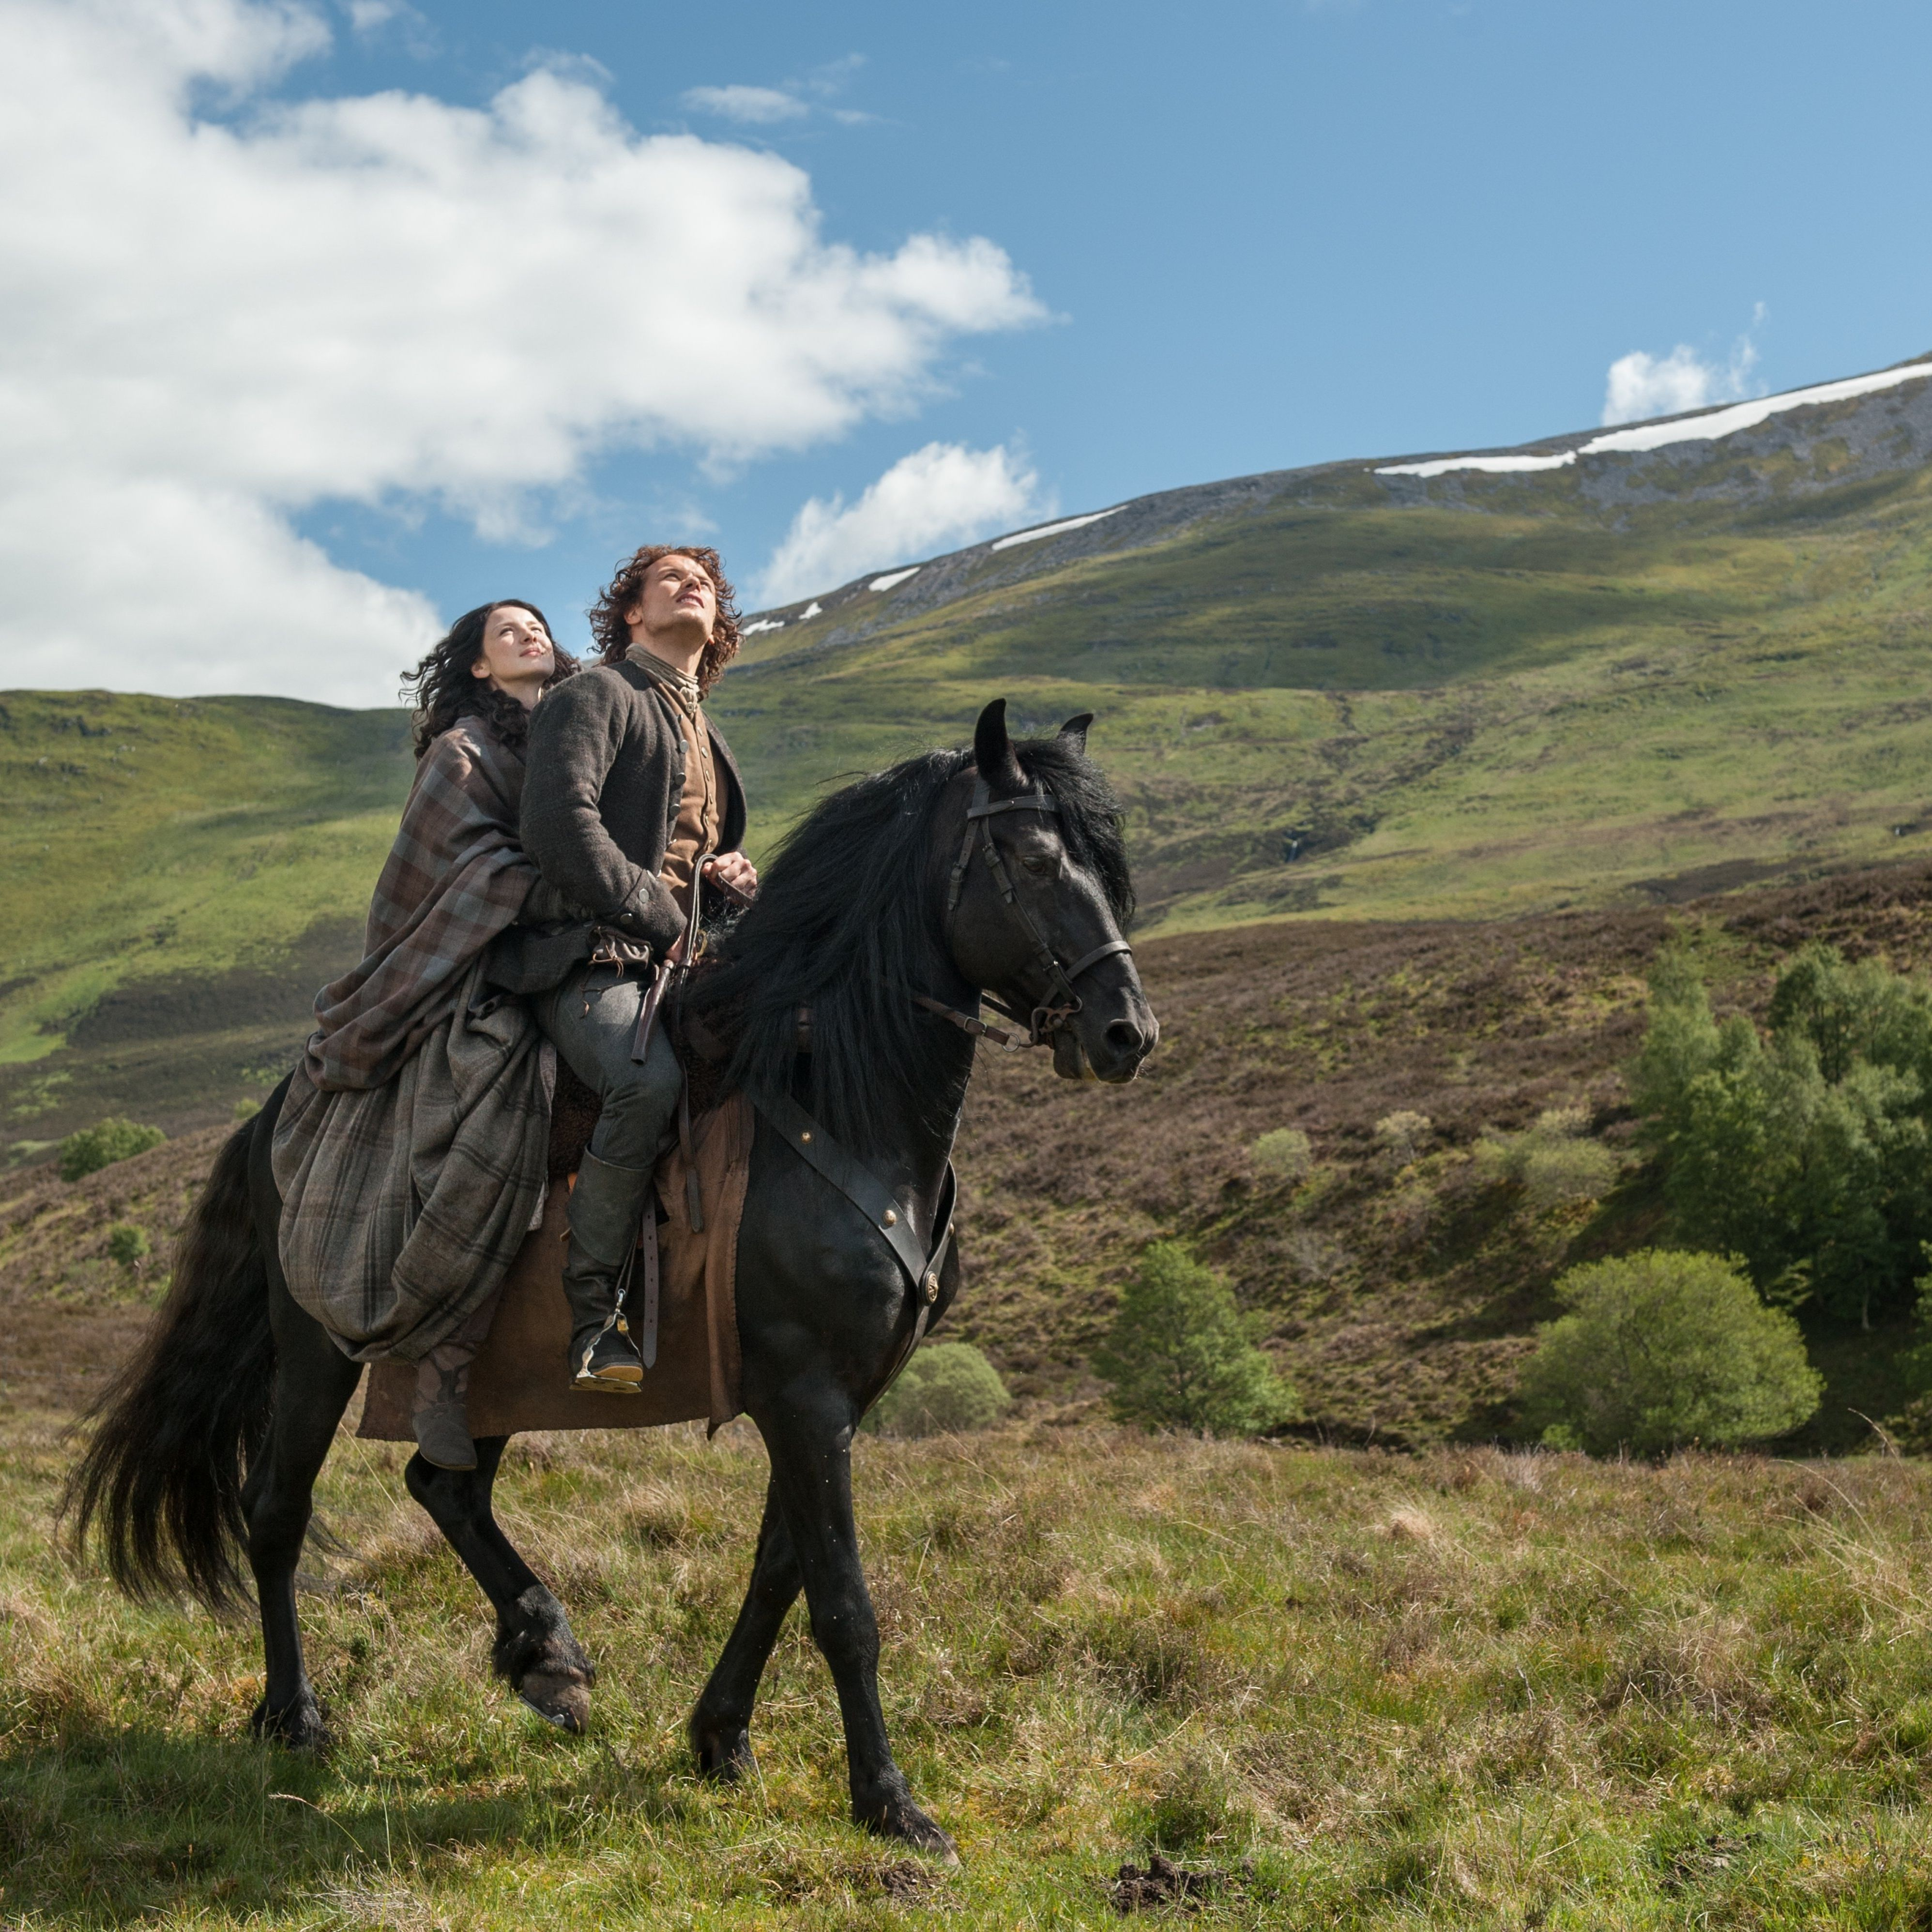 Jamie (Sam Heughan) and Claire Fraser (Caitriona Balfe) in Lallybroch from OUtlander on Starz via http://www.farfarawaysite.com/section/outlander/gallery14/gallery.htm